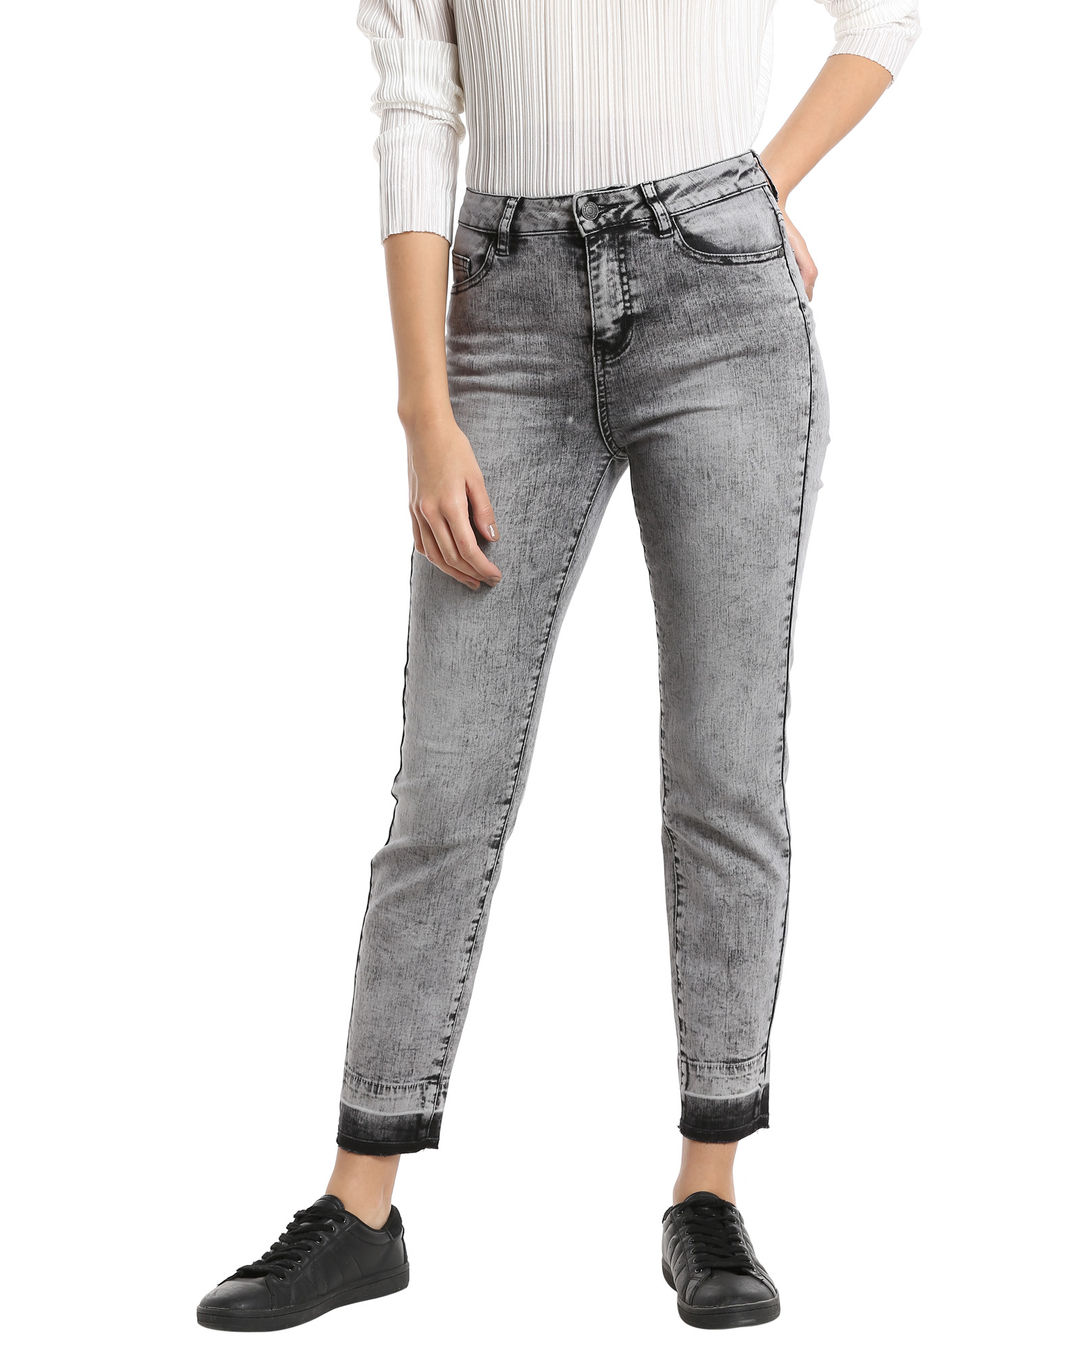 sports shoes eb346 f7d5f Buy Vero Moda Grey High Waisted Ankle Length Slim Jeans ...